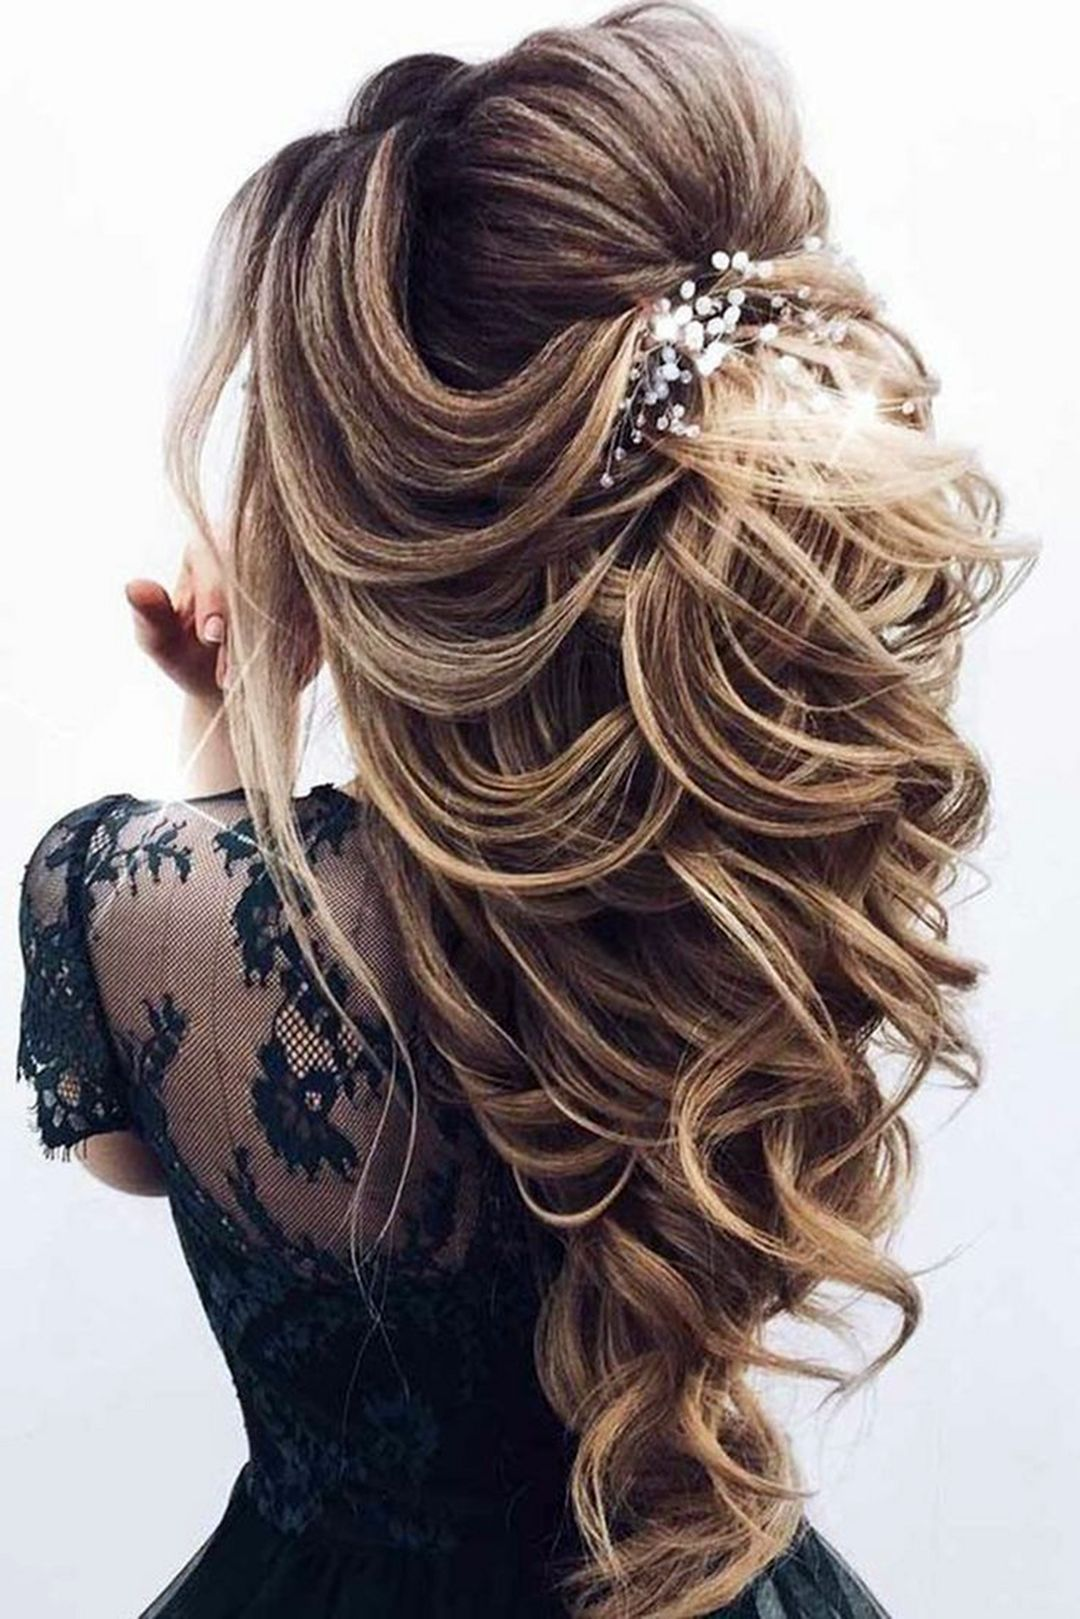 7 Memorable Prom Hairstyle Ideas That Will Make You The Center Of Attention - Fashions Nowadays